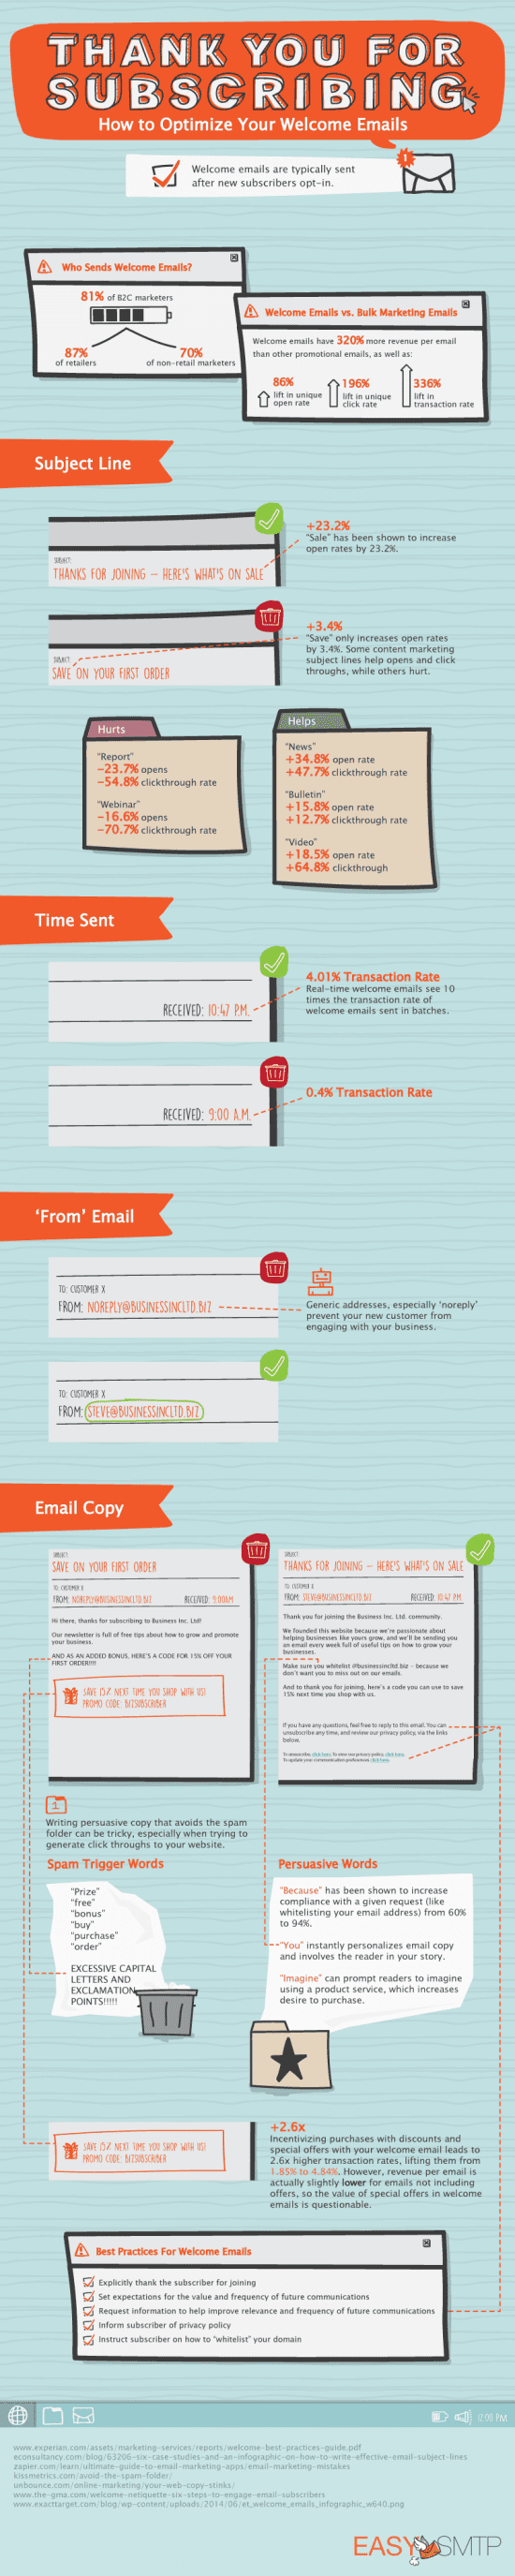 The power of the Welcome Email [Infographic]